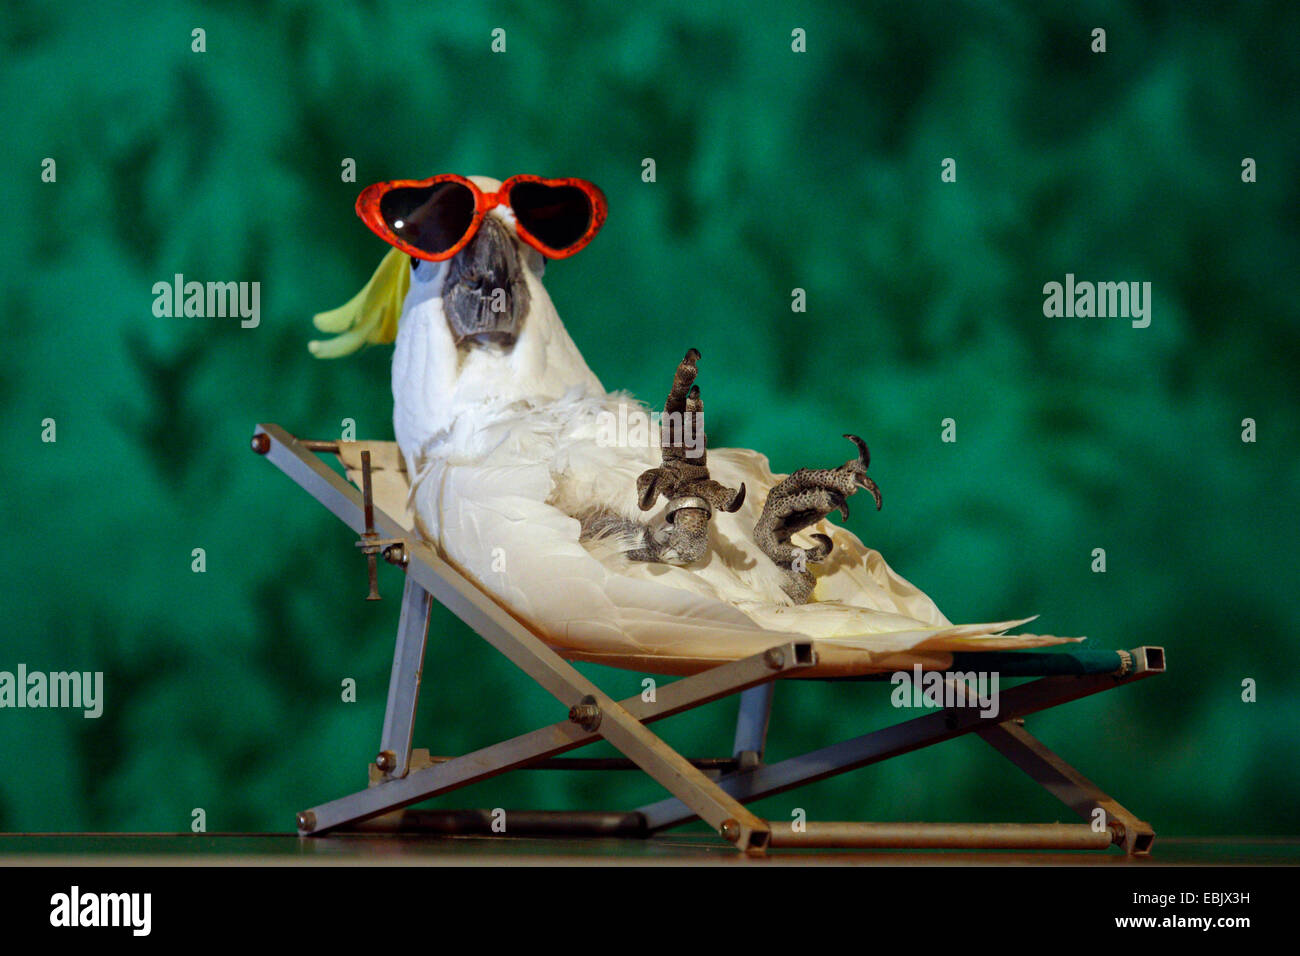 Parrot in the deck chair - Stock Image